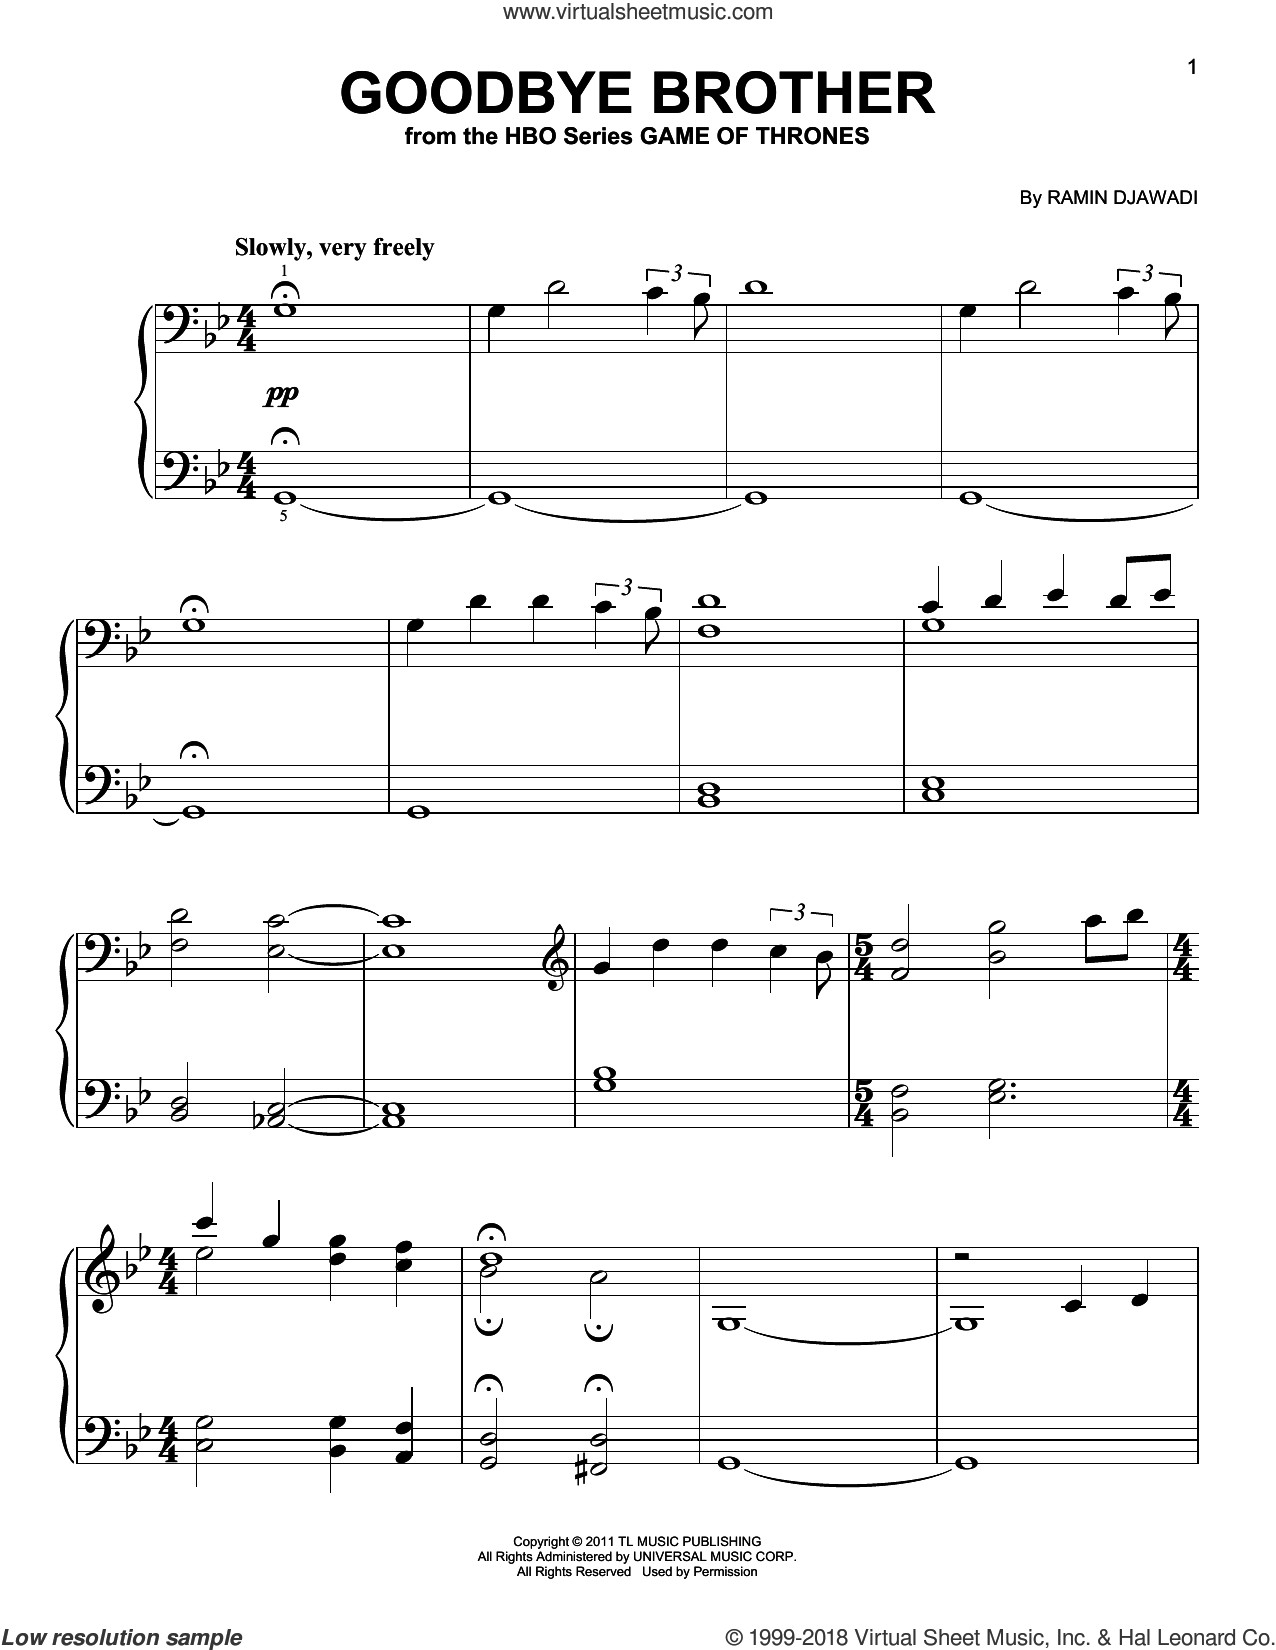 Goodbye Brother (from Game of Thrones) sheet music for piano solo by Ramin Djawadi, classical score, easy skill level